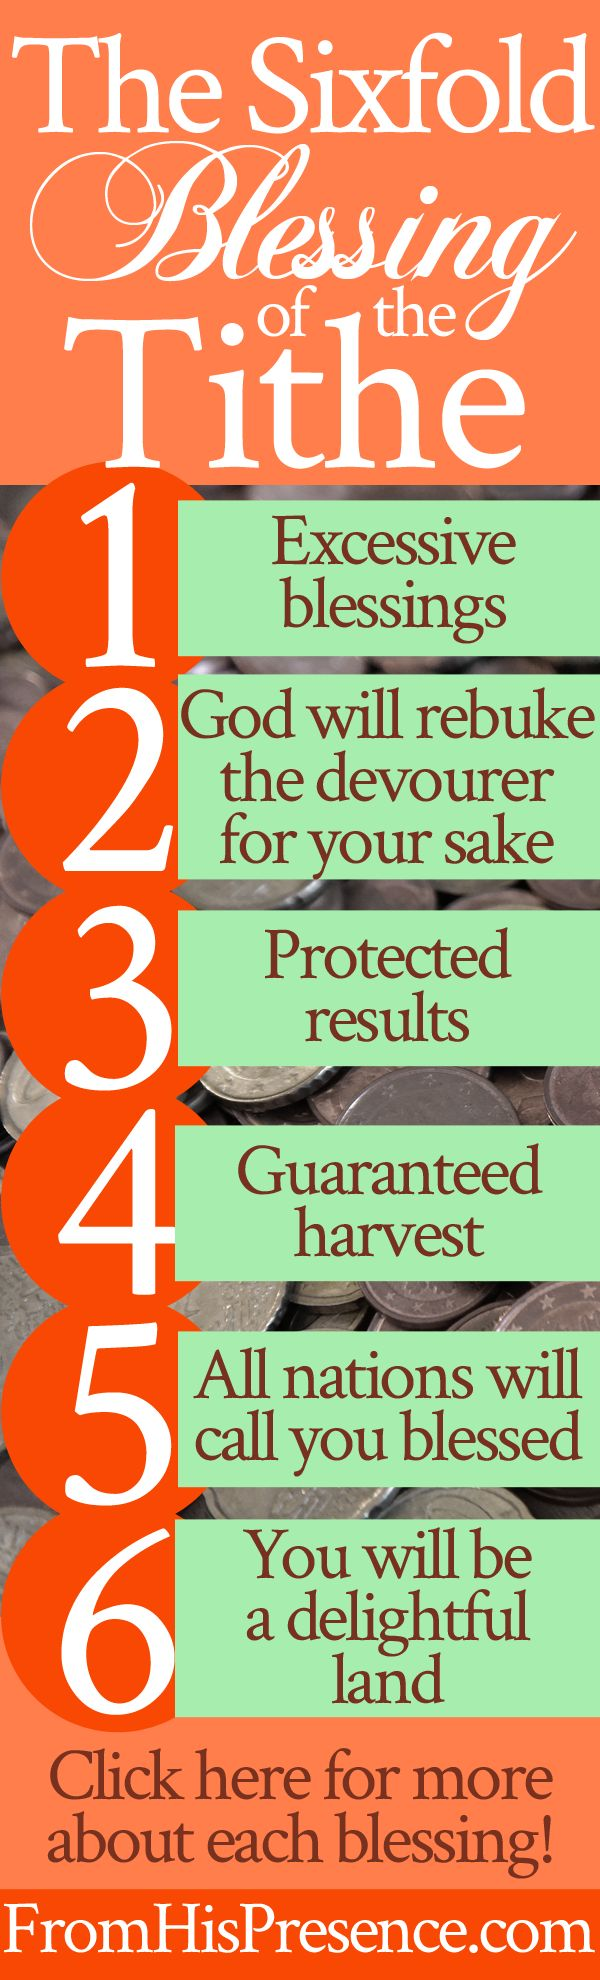 Sixfold blessing of the tithe | prayer | personal finance | giving | stewardship | money | breaking curses | God's blessing